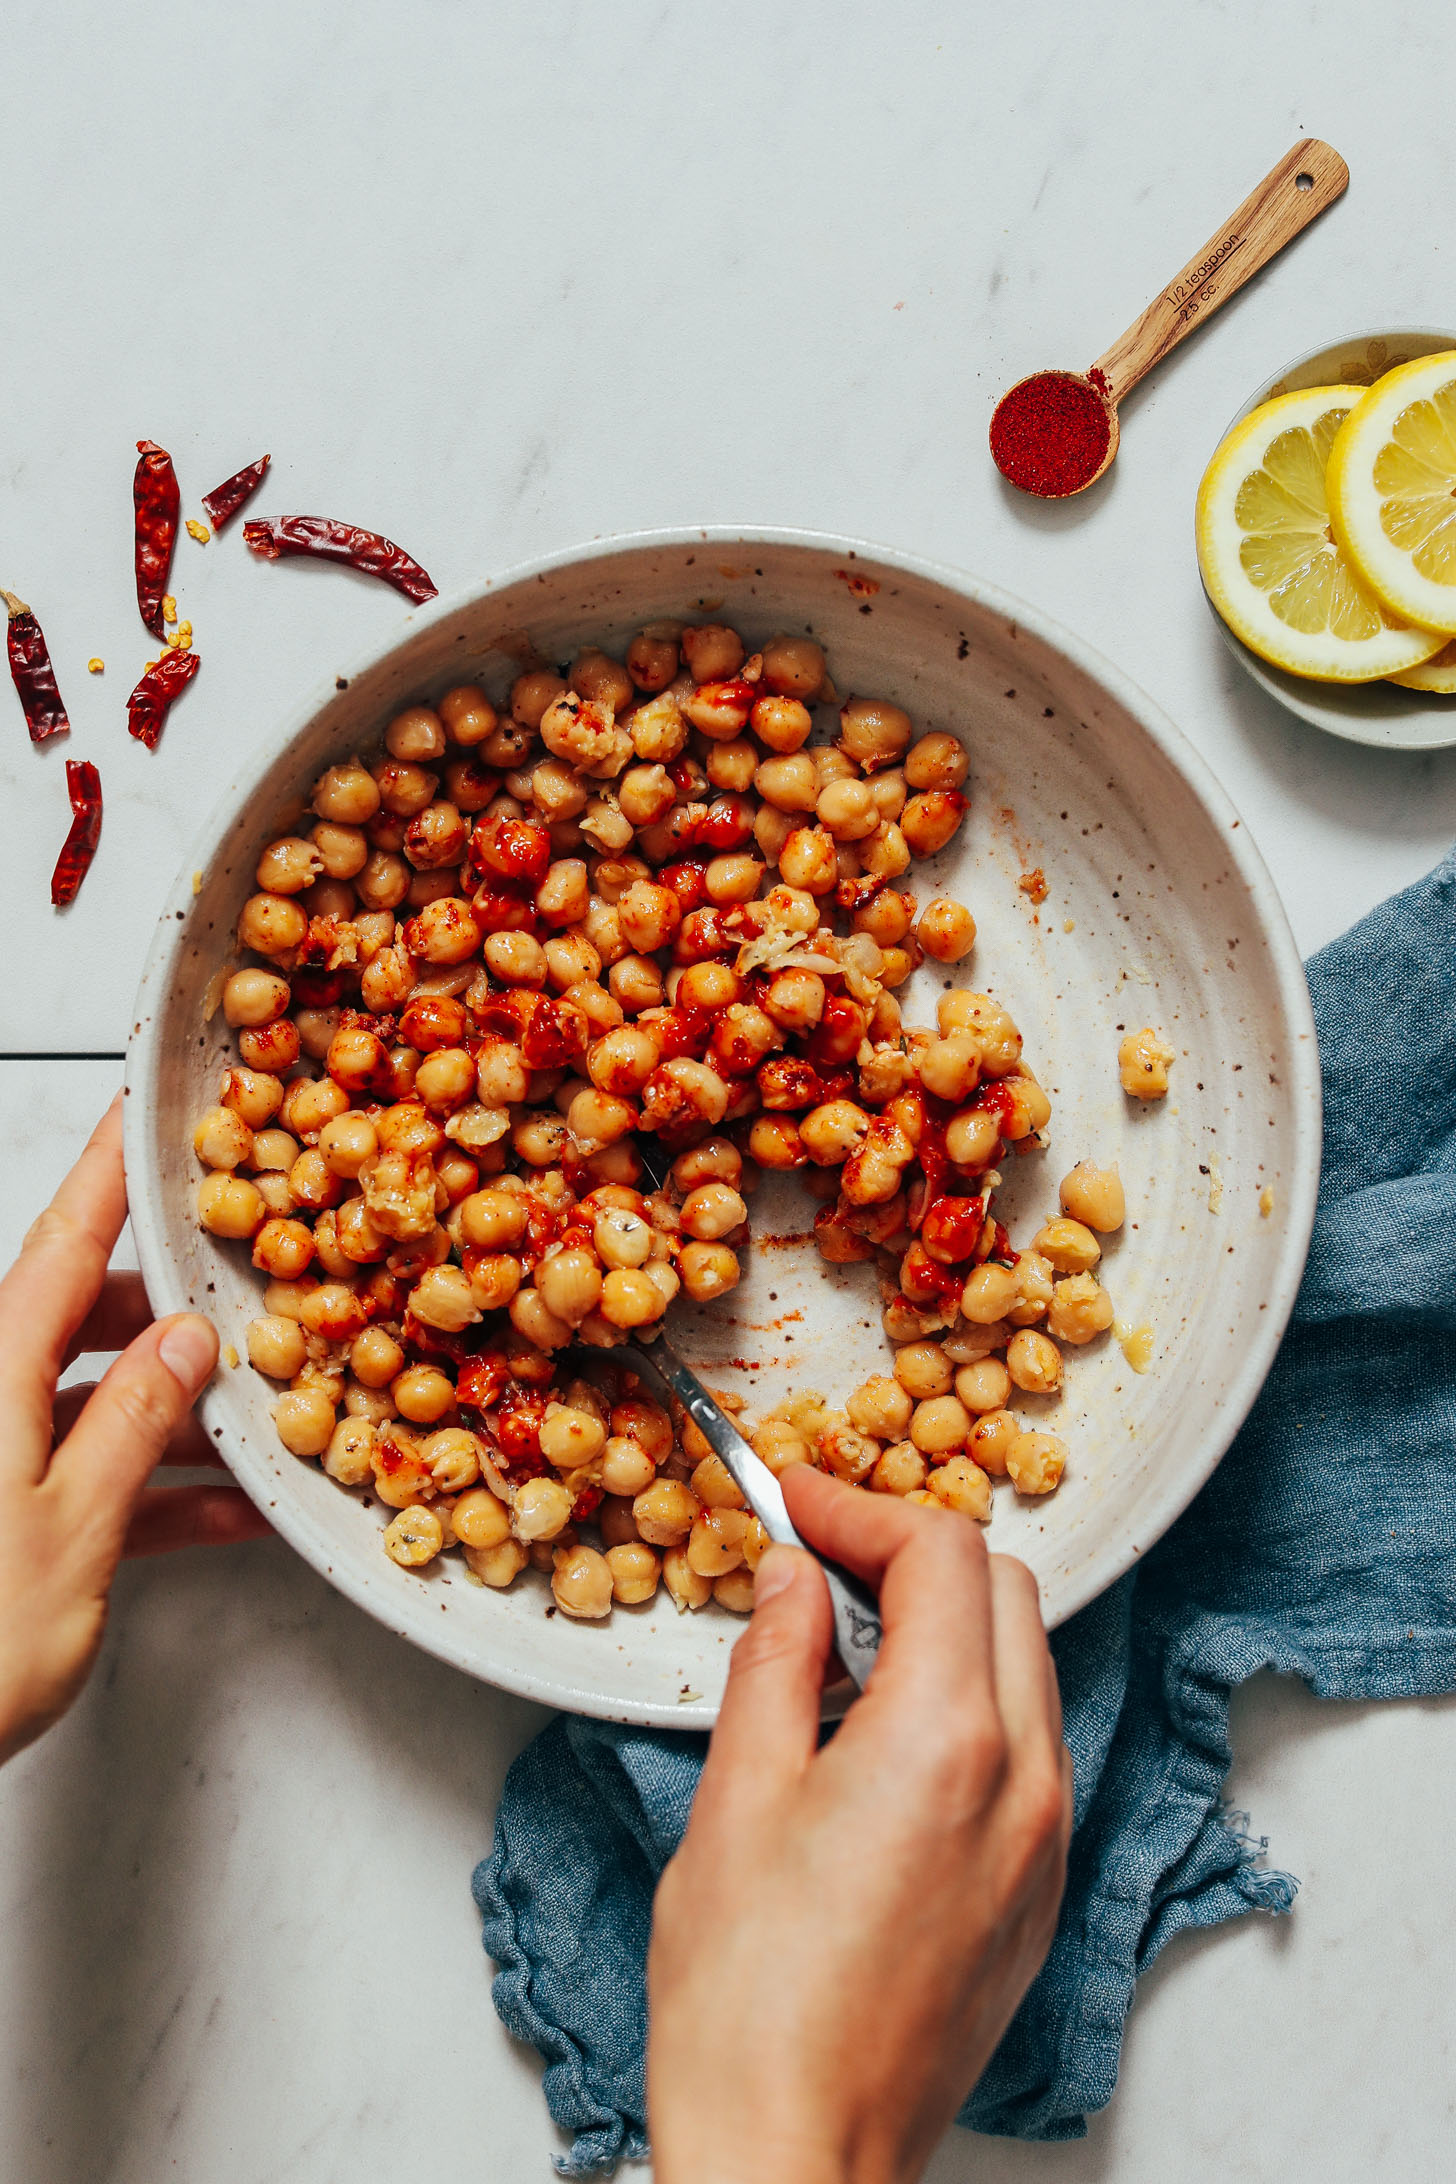 Using a spoon to stir together chickpeas, harissa paste, lemon juice, garlic, sea salt, maple syrup, smoked paprika, and olive oil